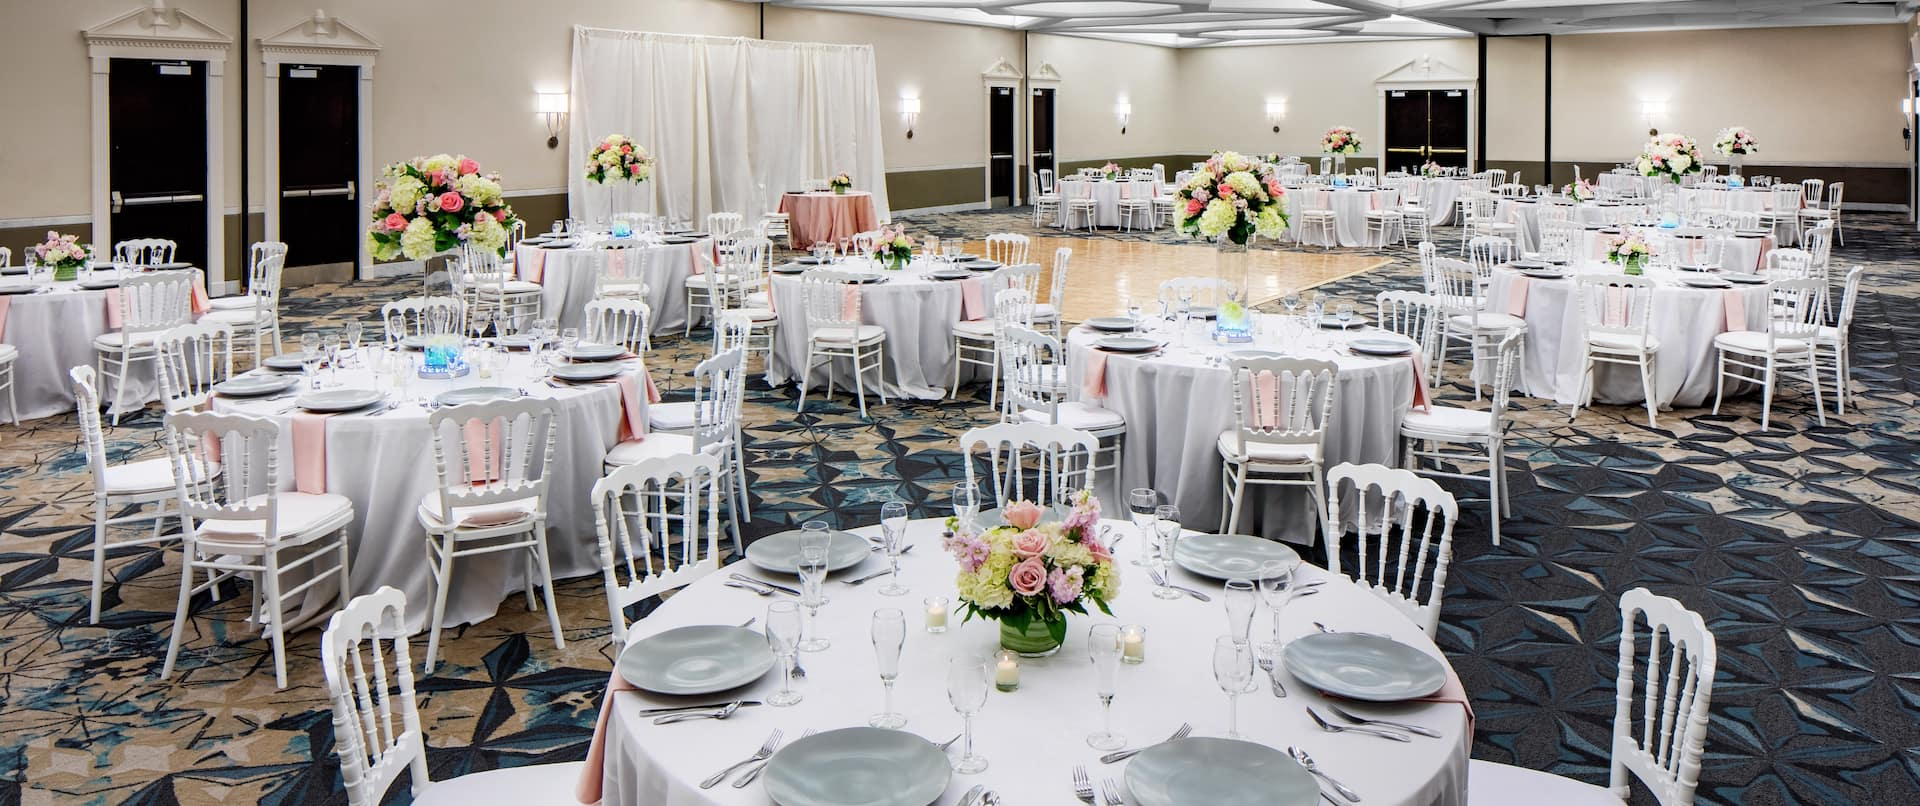 Ballroom with Banquet Tables and Dance Floor